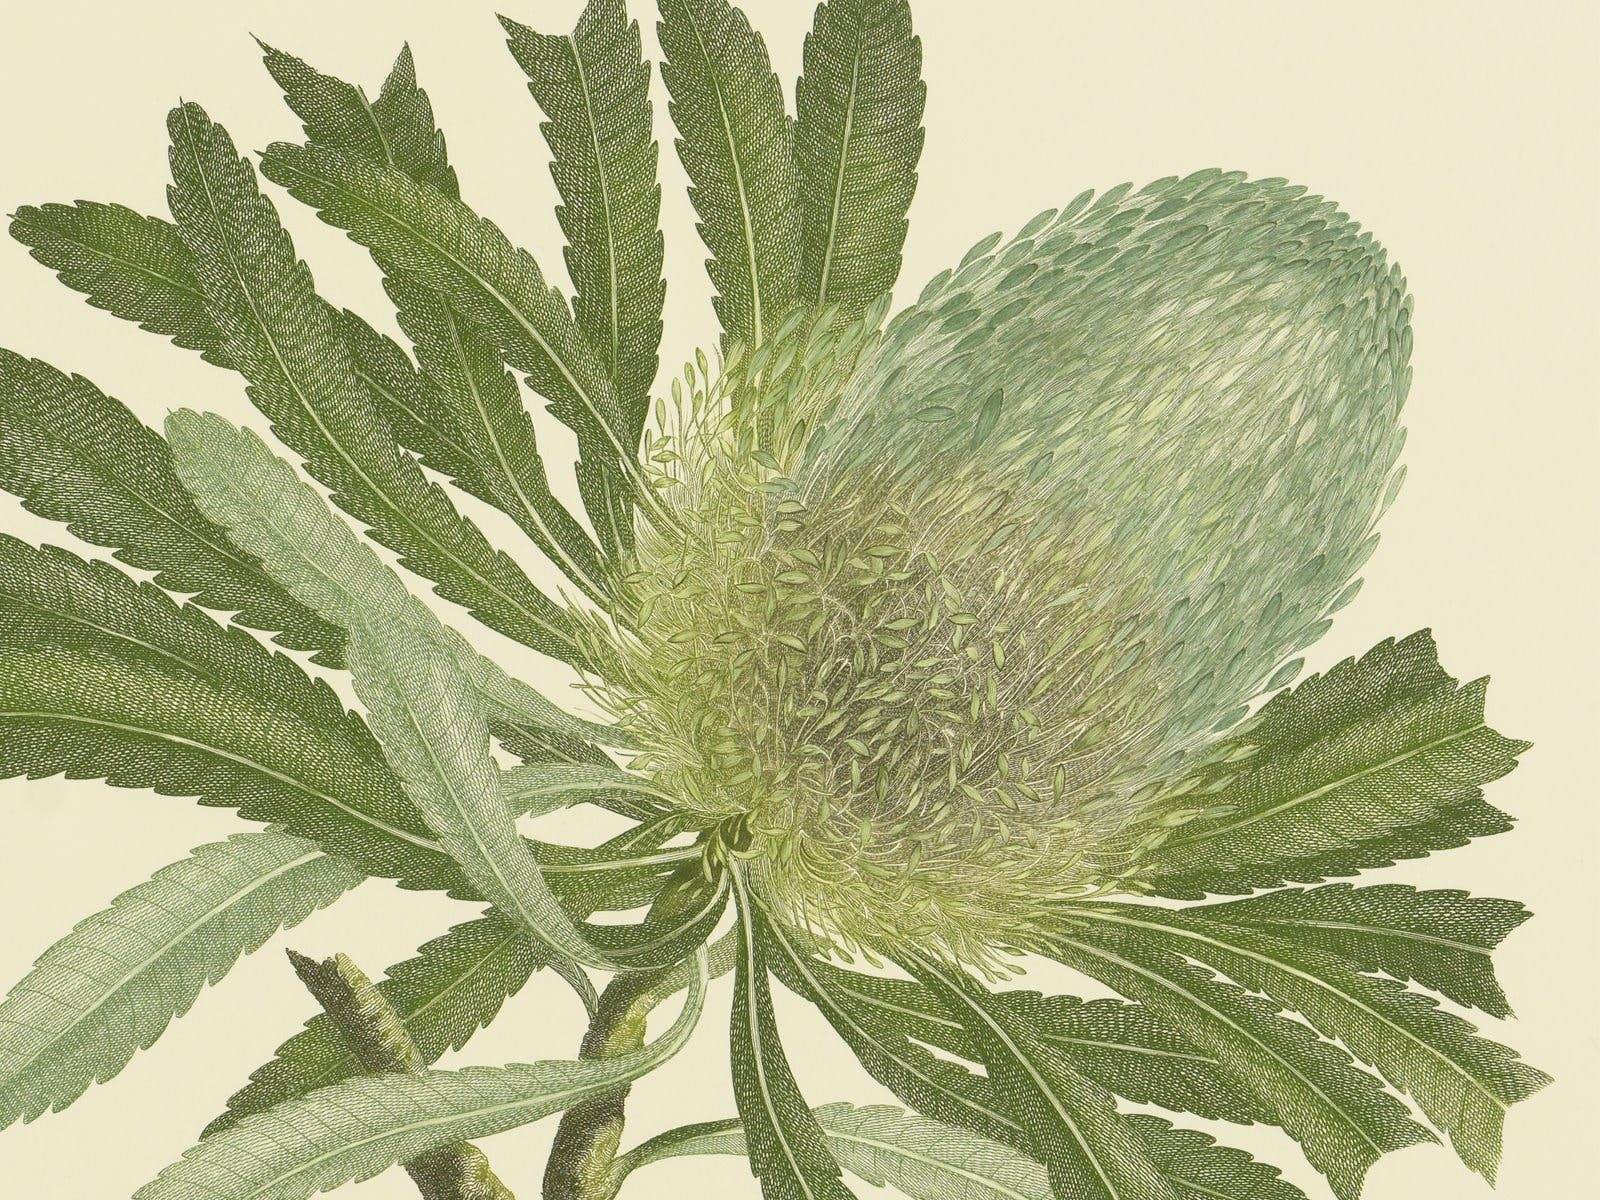 Detail from Banks' Florilegium, Banksia serrata (Proteaceae), 1983.